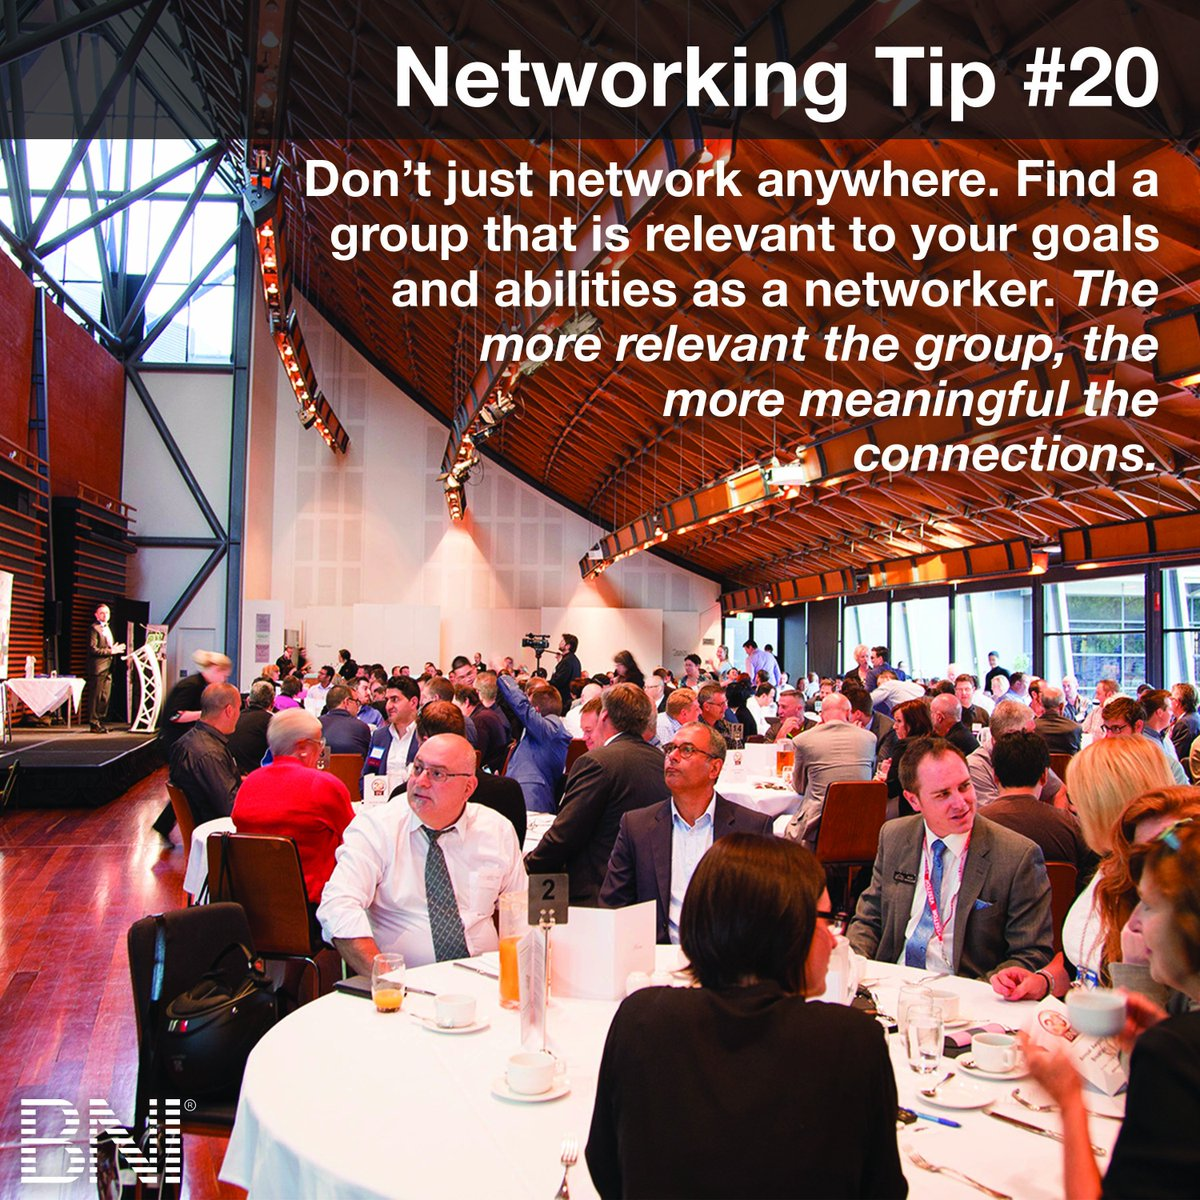 Networking tip: You can't attend everything, so make your networking events as impactful as possible.